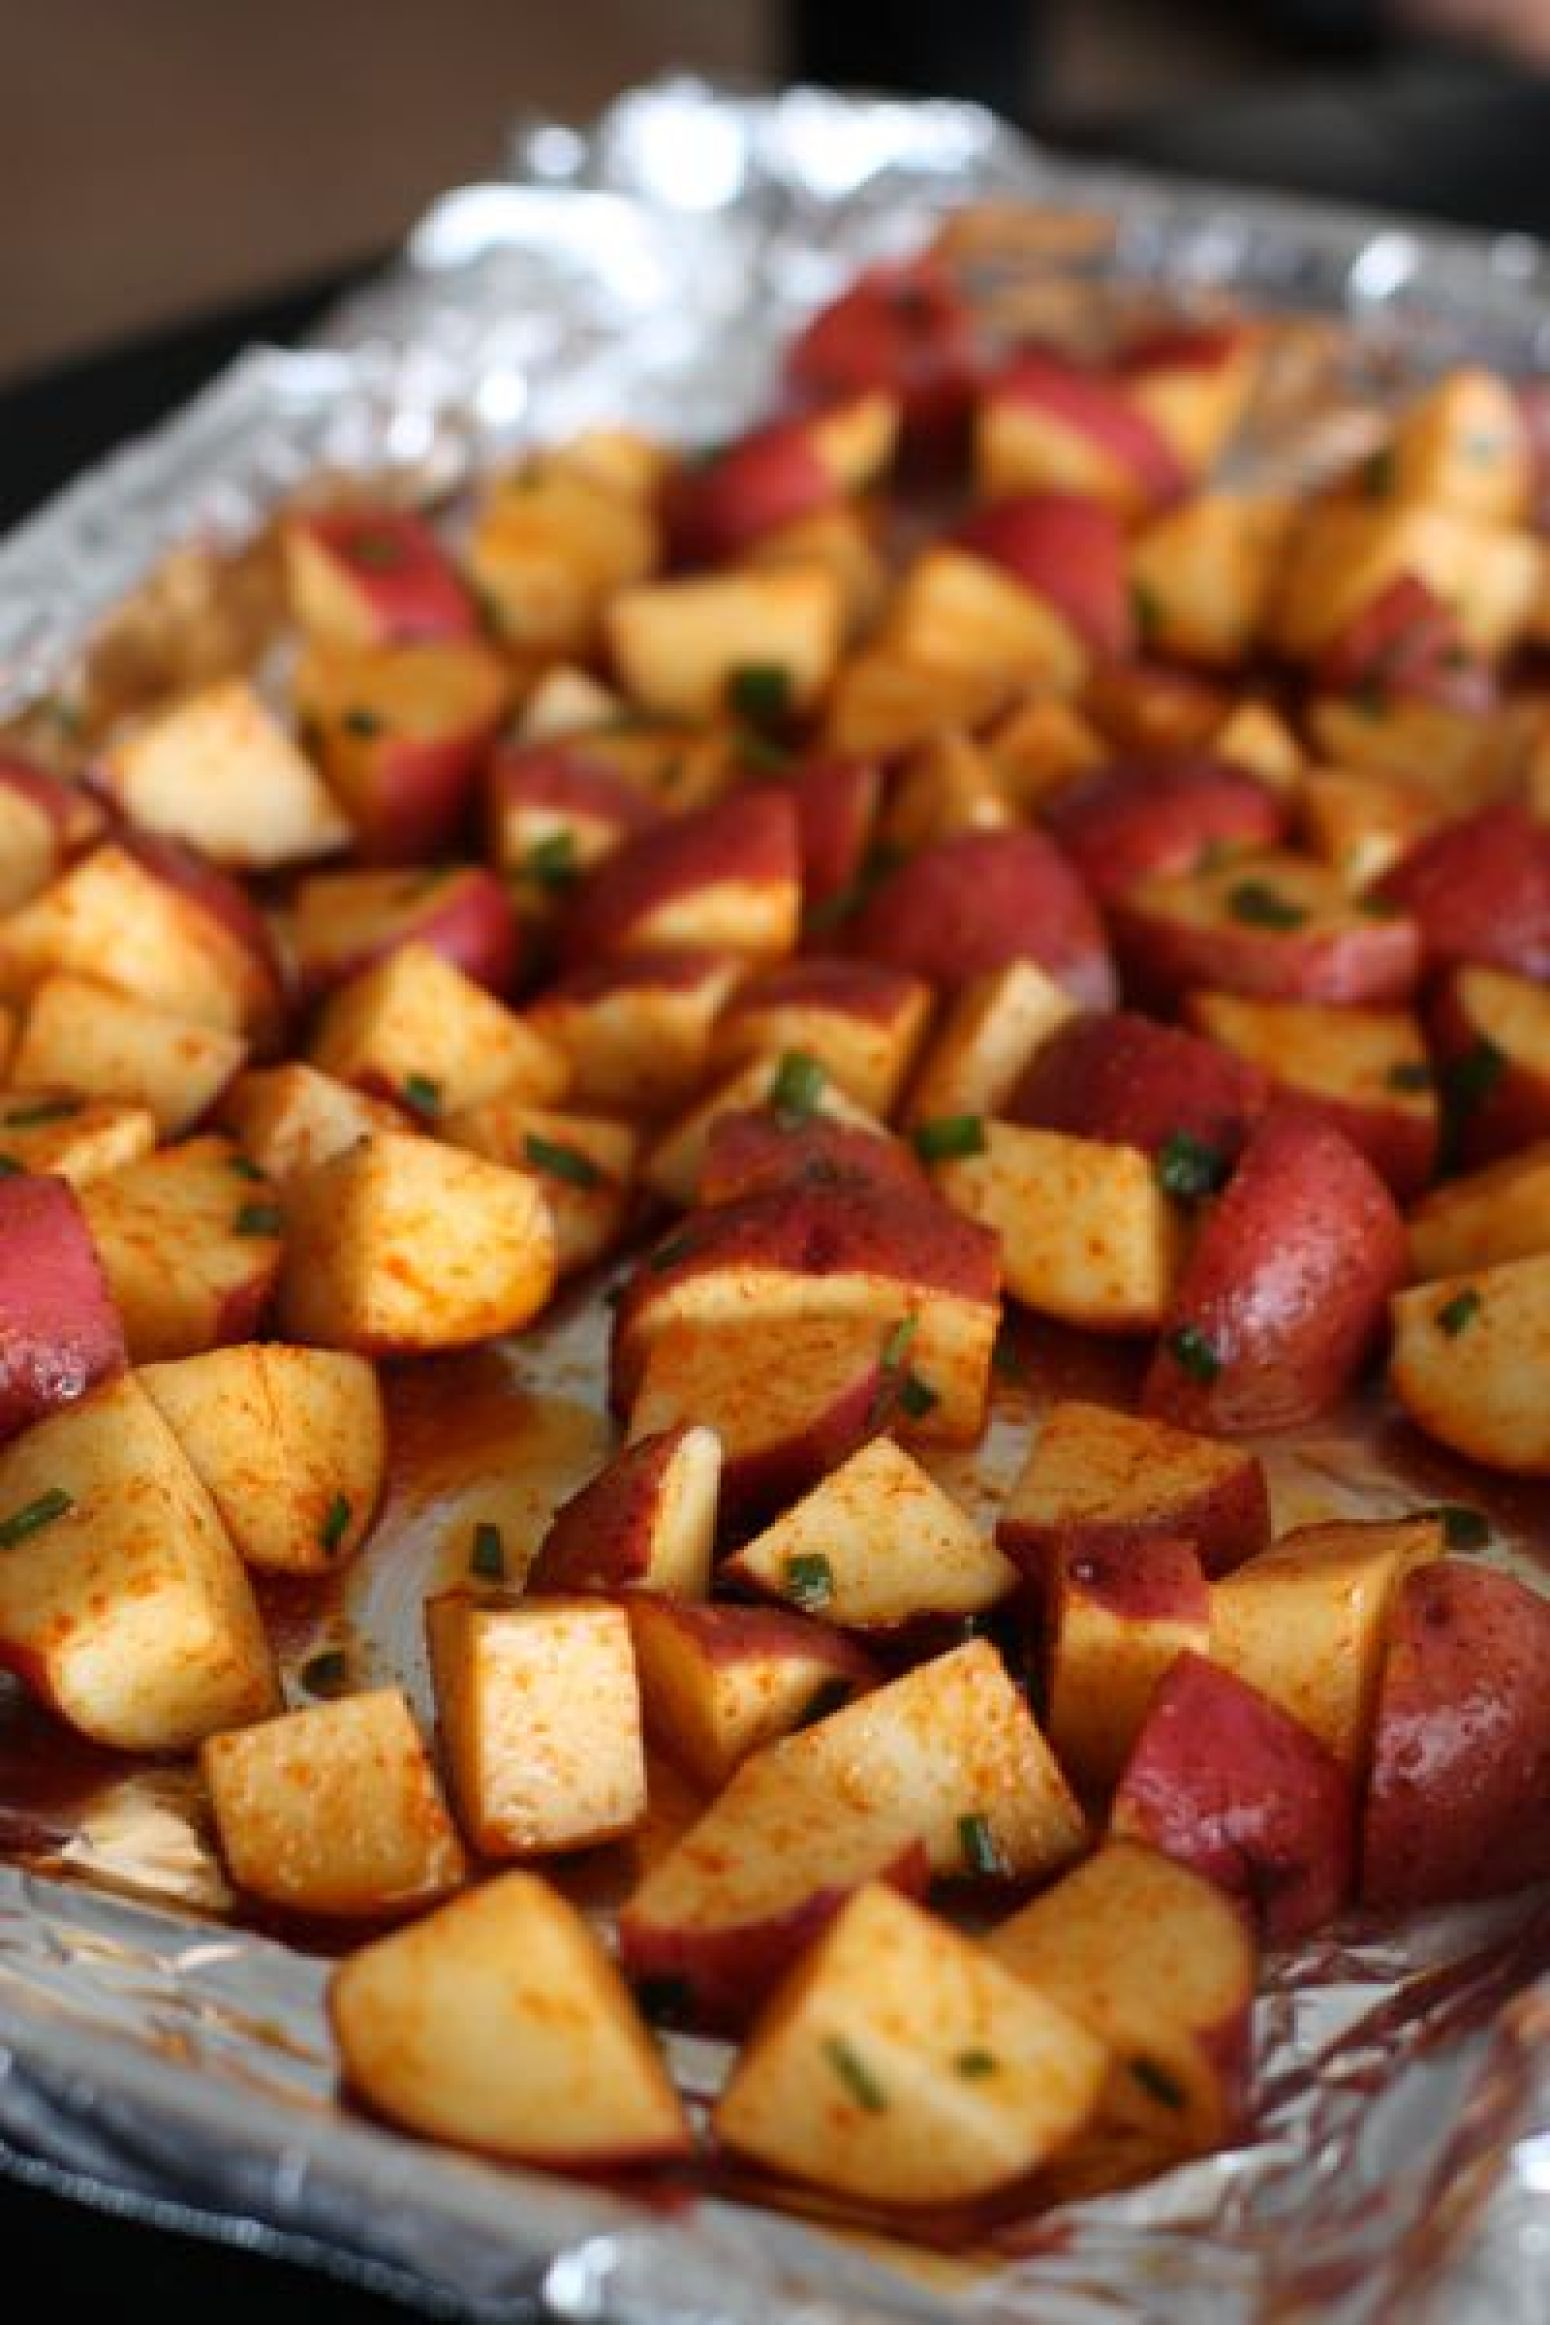 Roasted Red Potatoes with Smoked Paprika Recipe | Just A ...